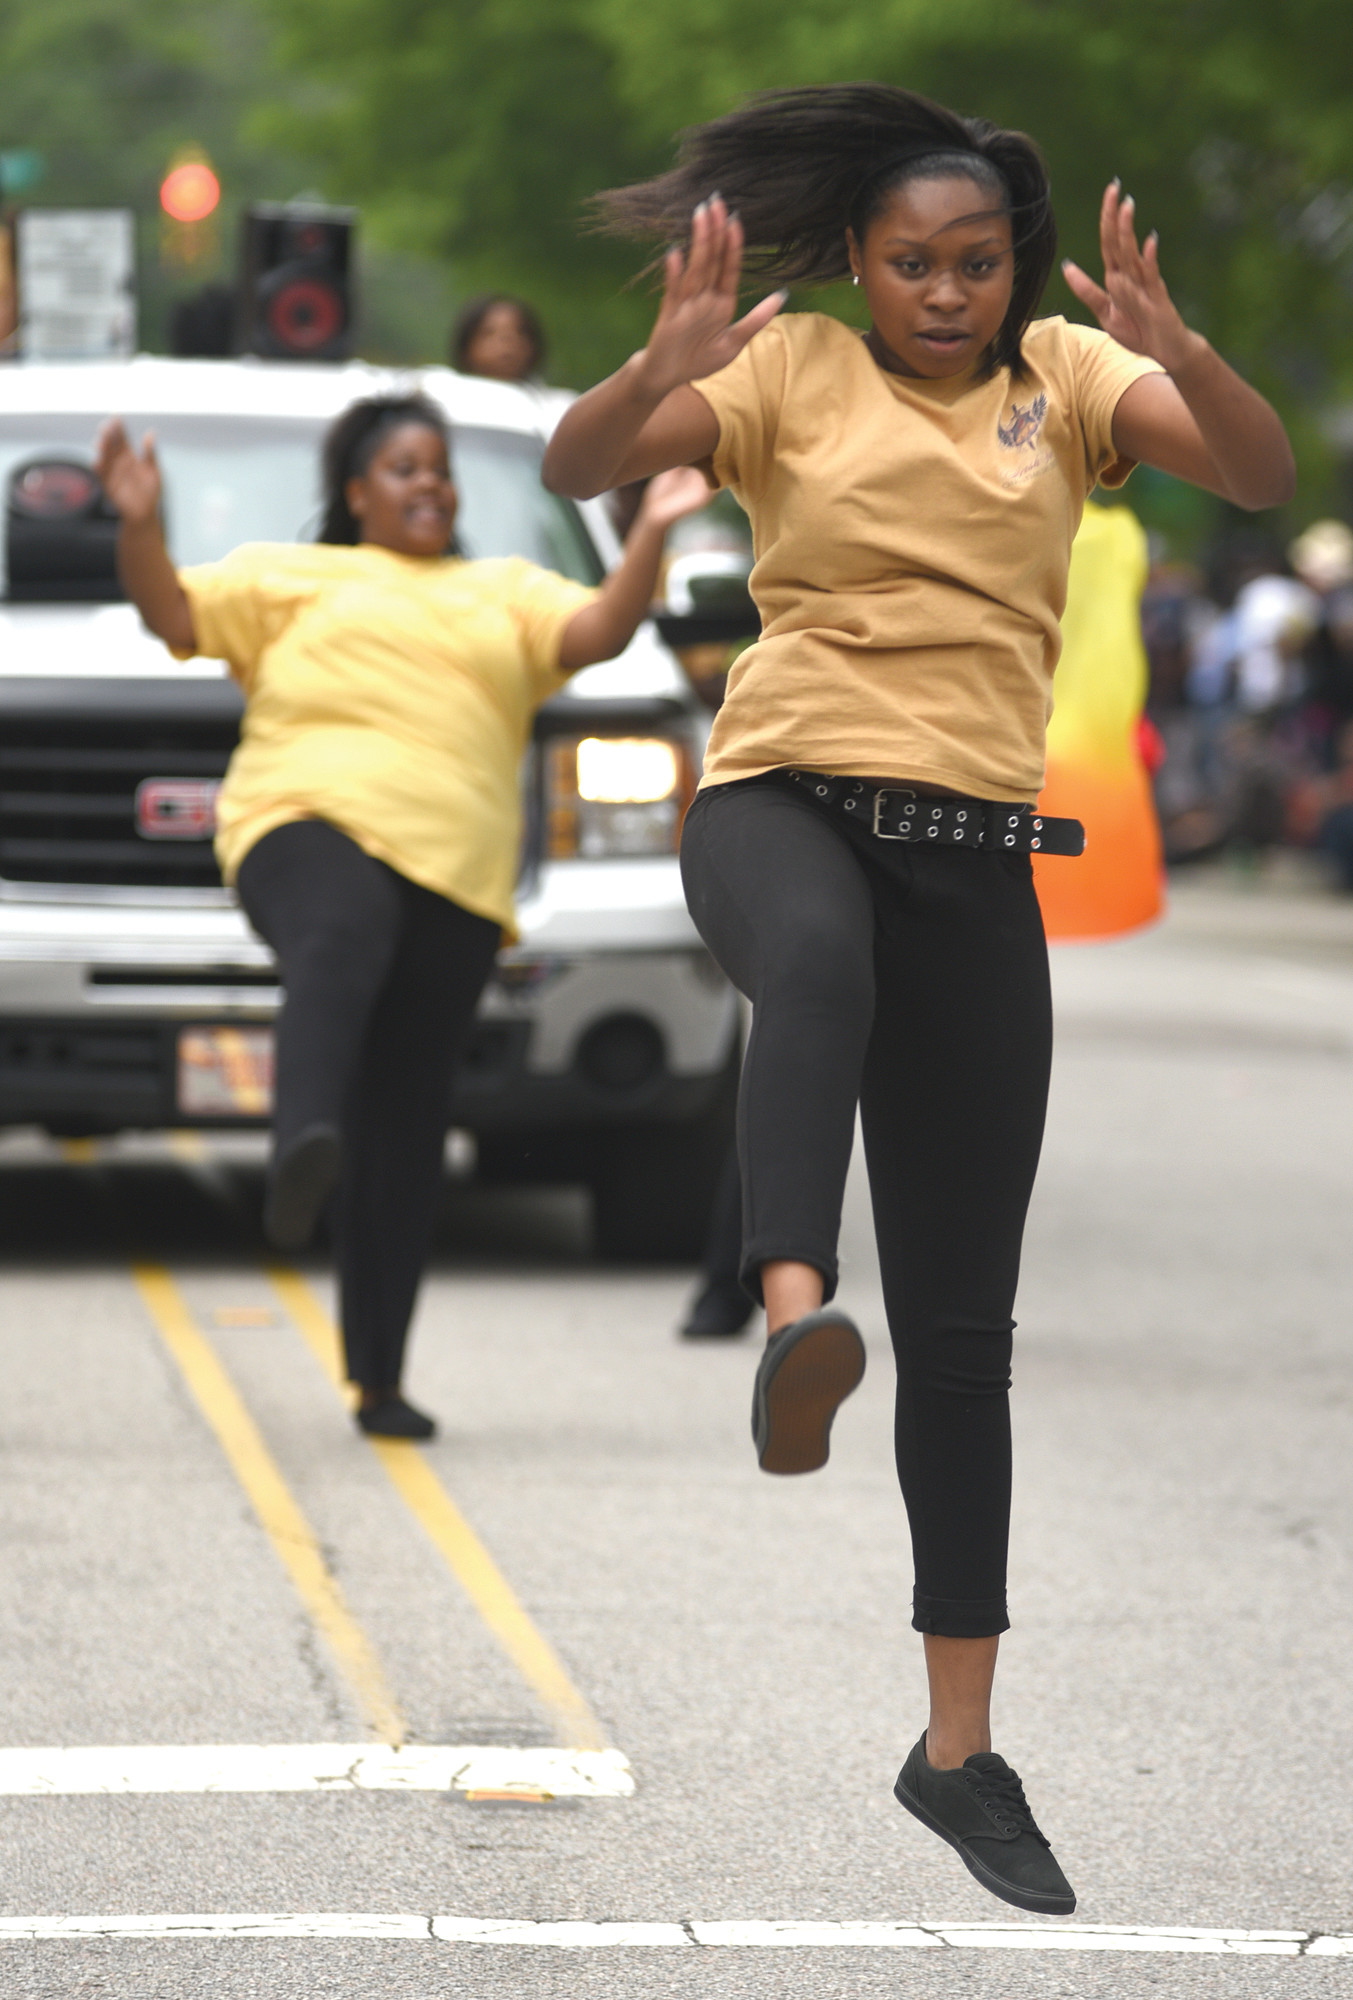 Members of Fresh Fire Christian Life Center dance and jump to music during last year's parade.